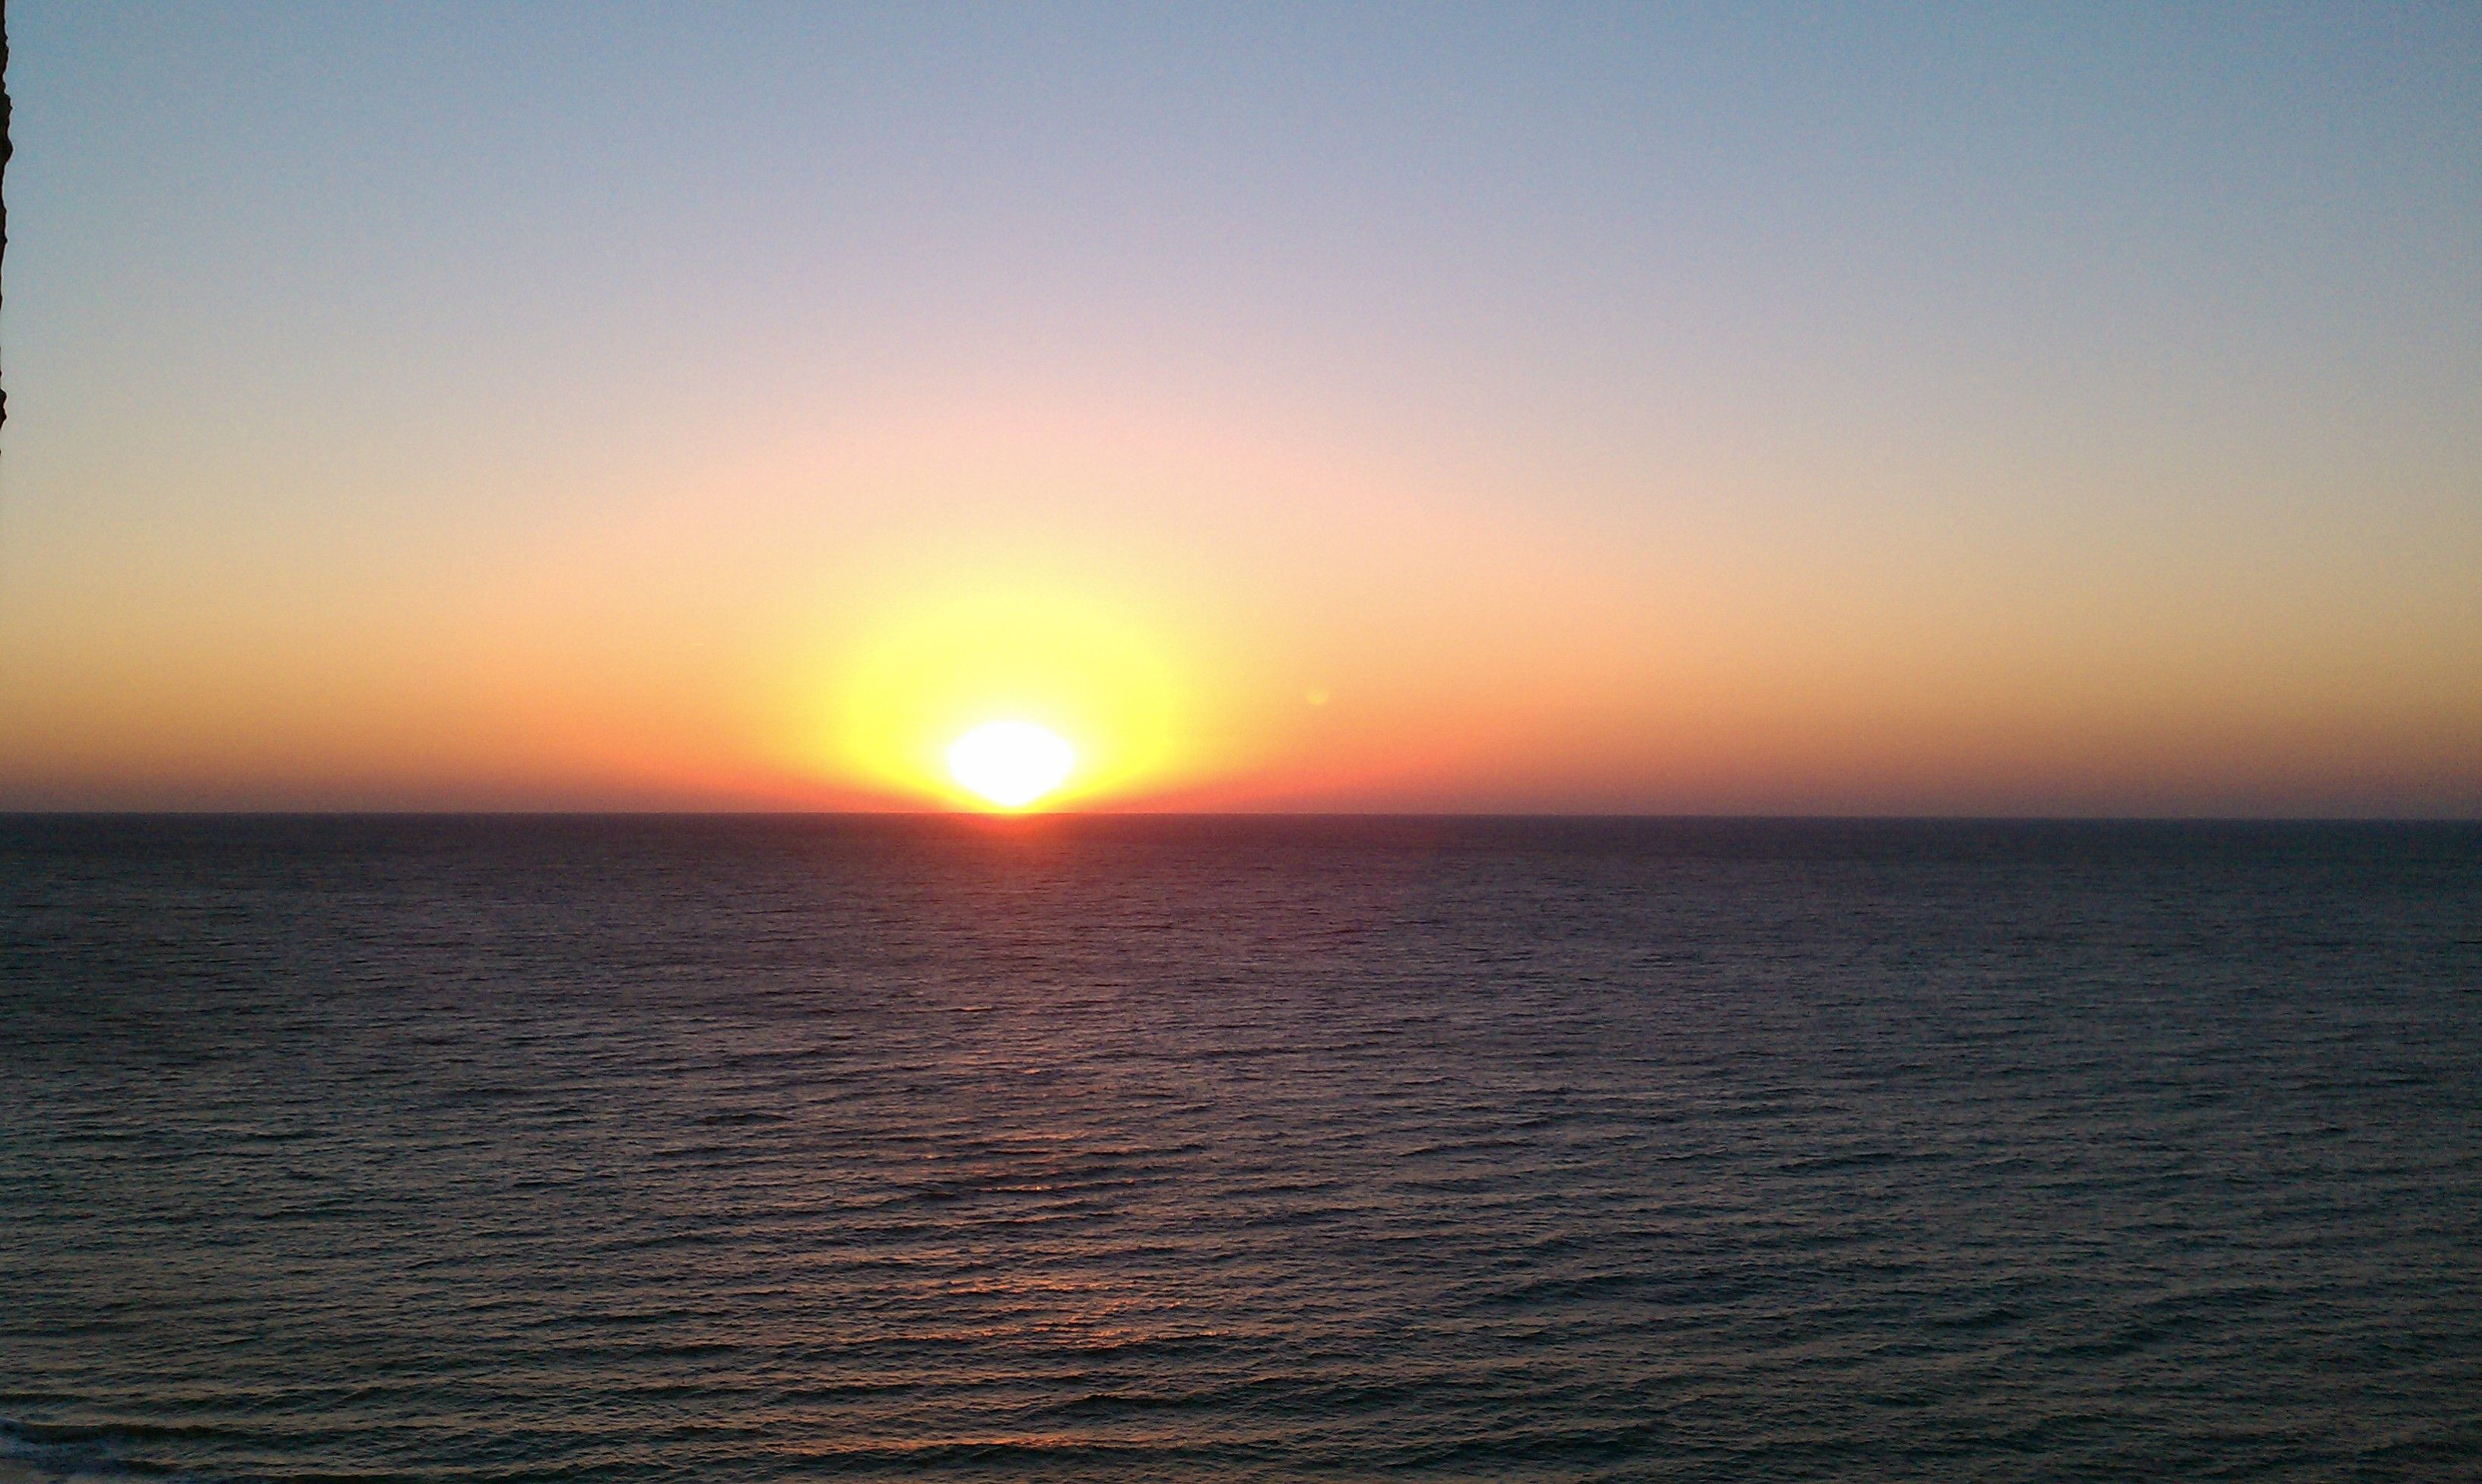 Sunset Pictures Myrtle Beach